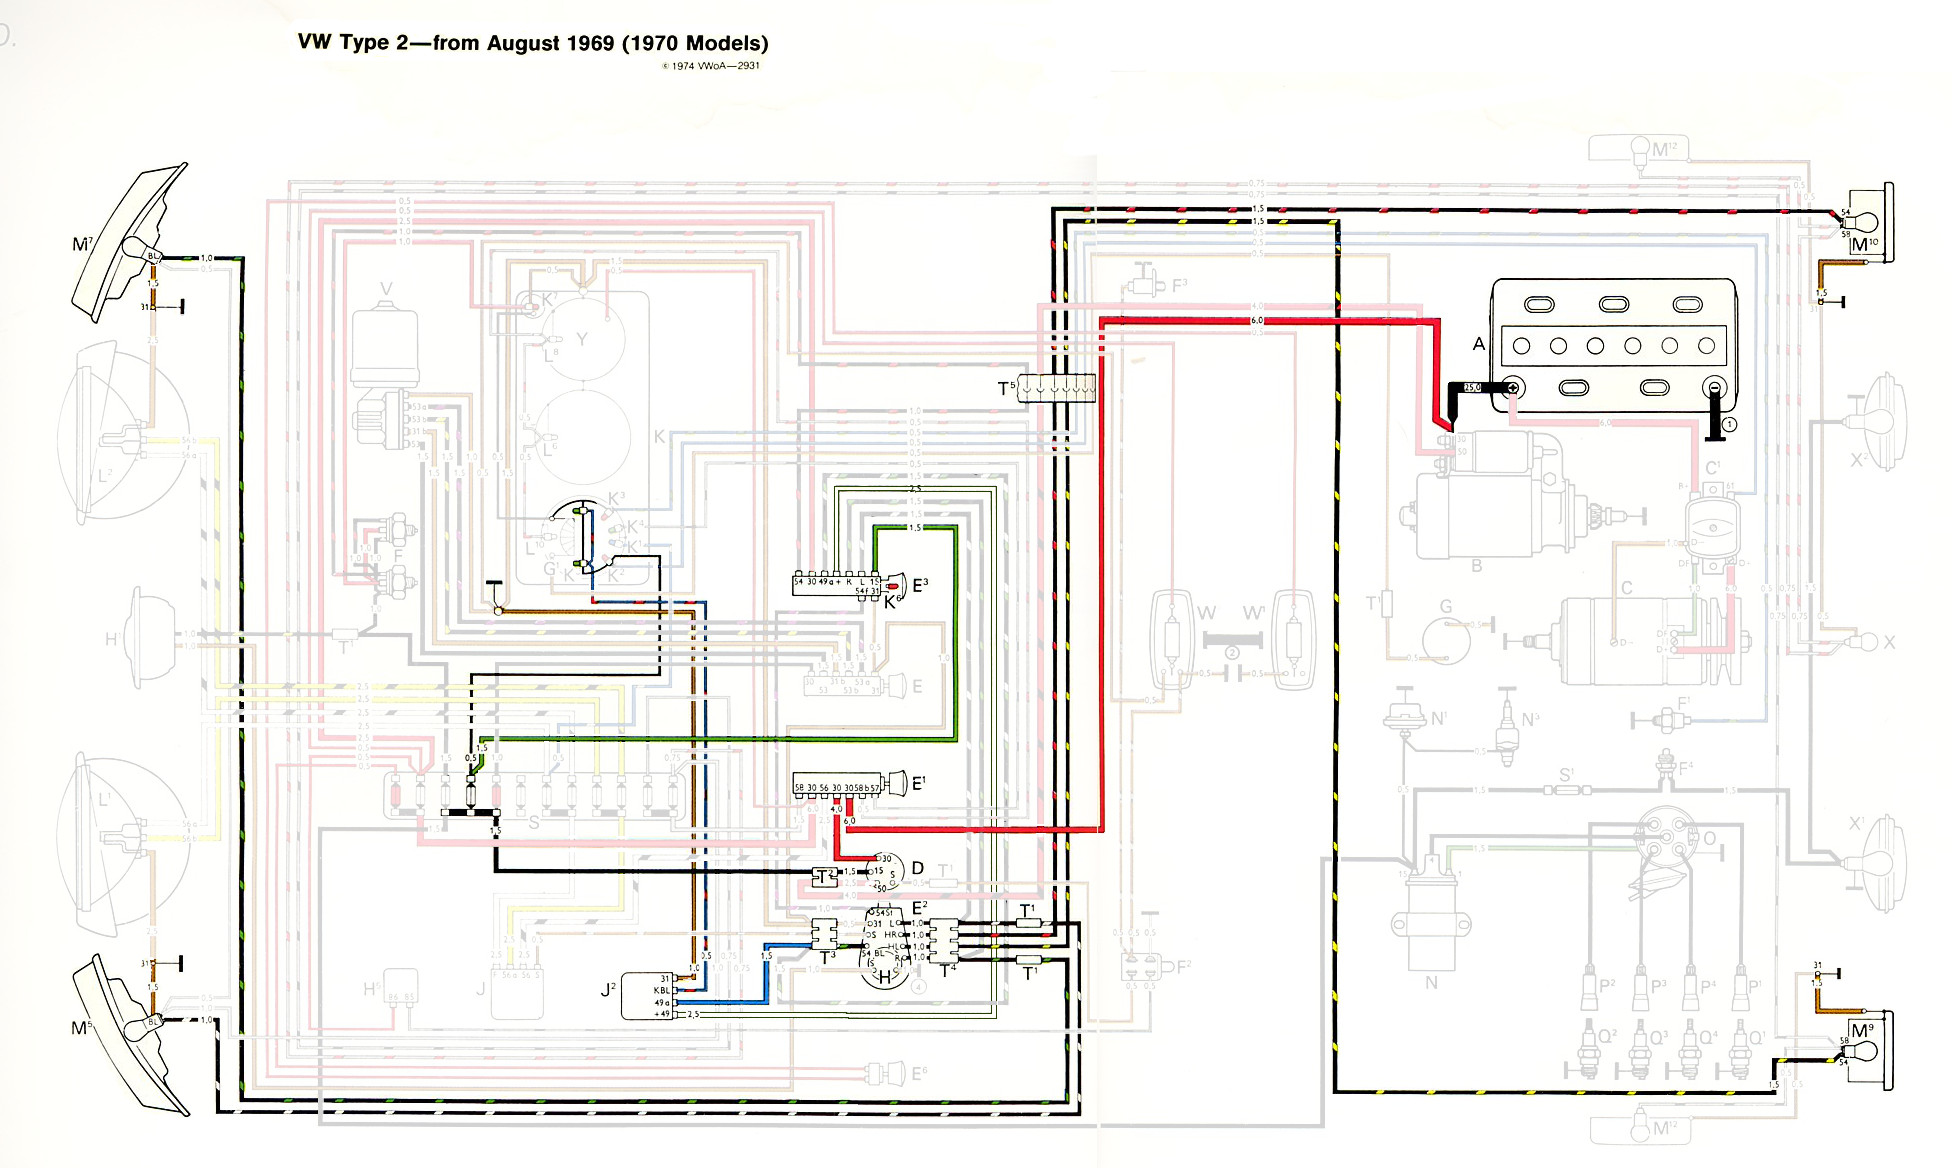 1970bus_signals 1970 vw beetle wiring diagram 1969 vw beetle turn signal wiring 1971 vw bus wiring diagram at mifinder.co